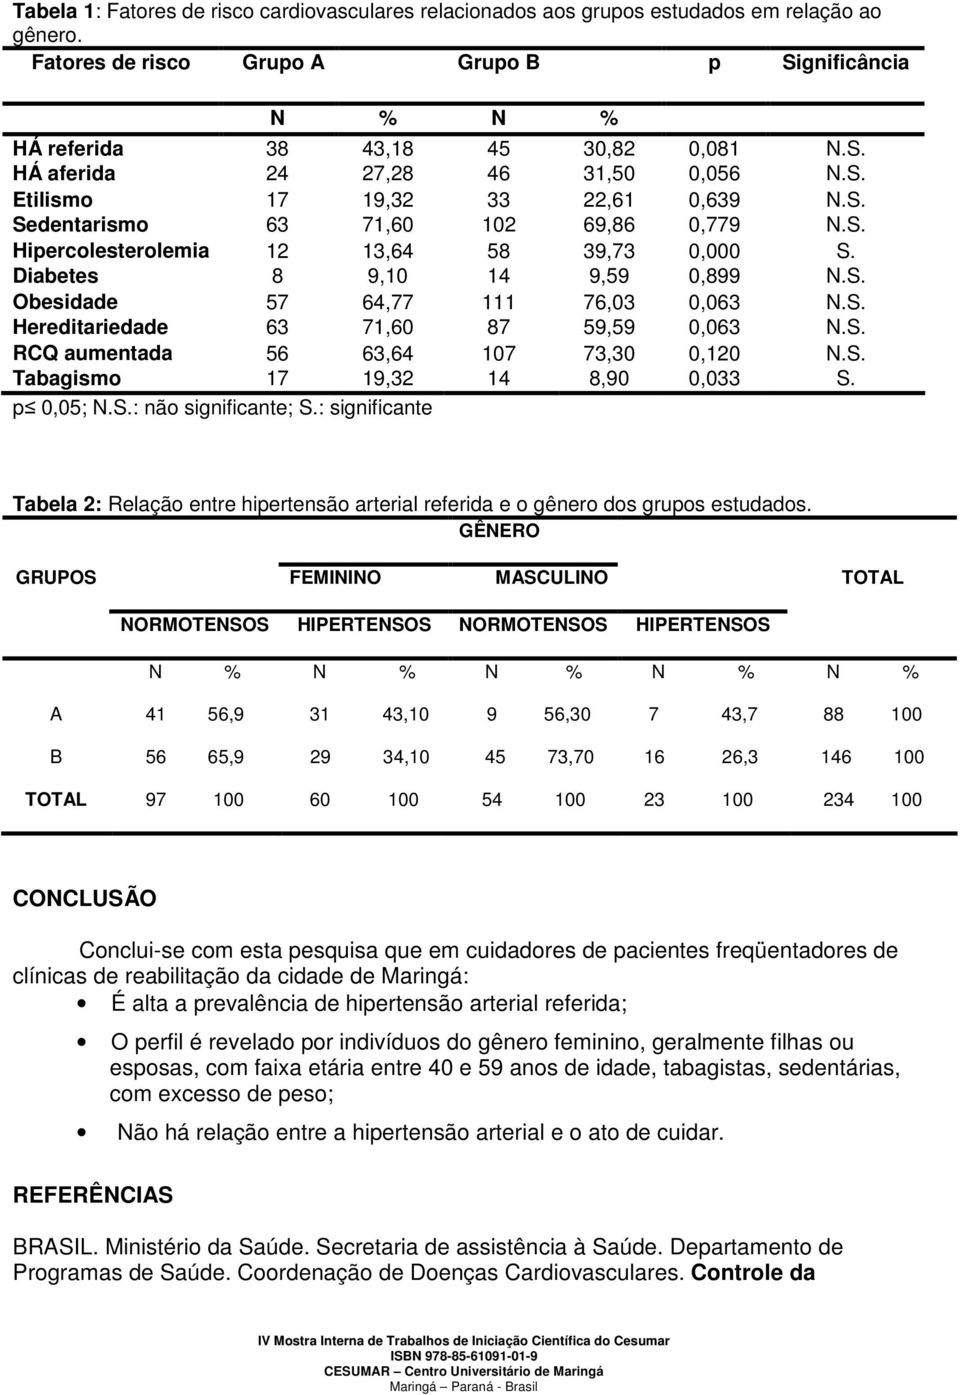 S. Hereditariedade 63 71,60 87 59,59 0,063 N.S. RCQ aumentada 56 63,64 107 73,30 0,120 N.S. Tabagismo 17 19,32 14 8,90 0,033 S. p 0,05; N.S.: não significante; S.